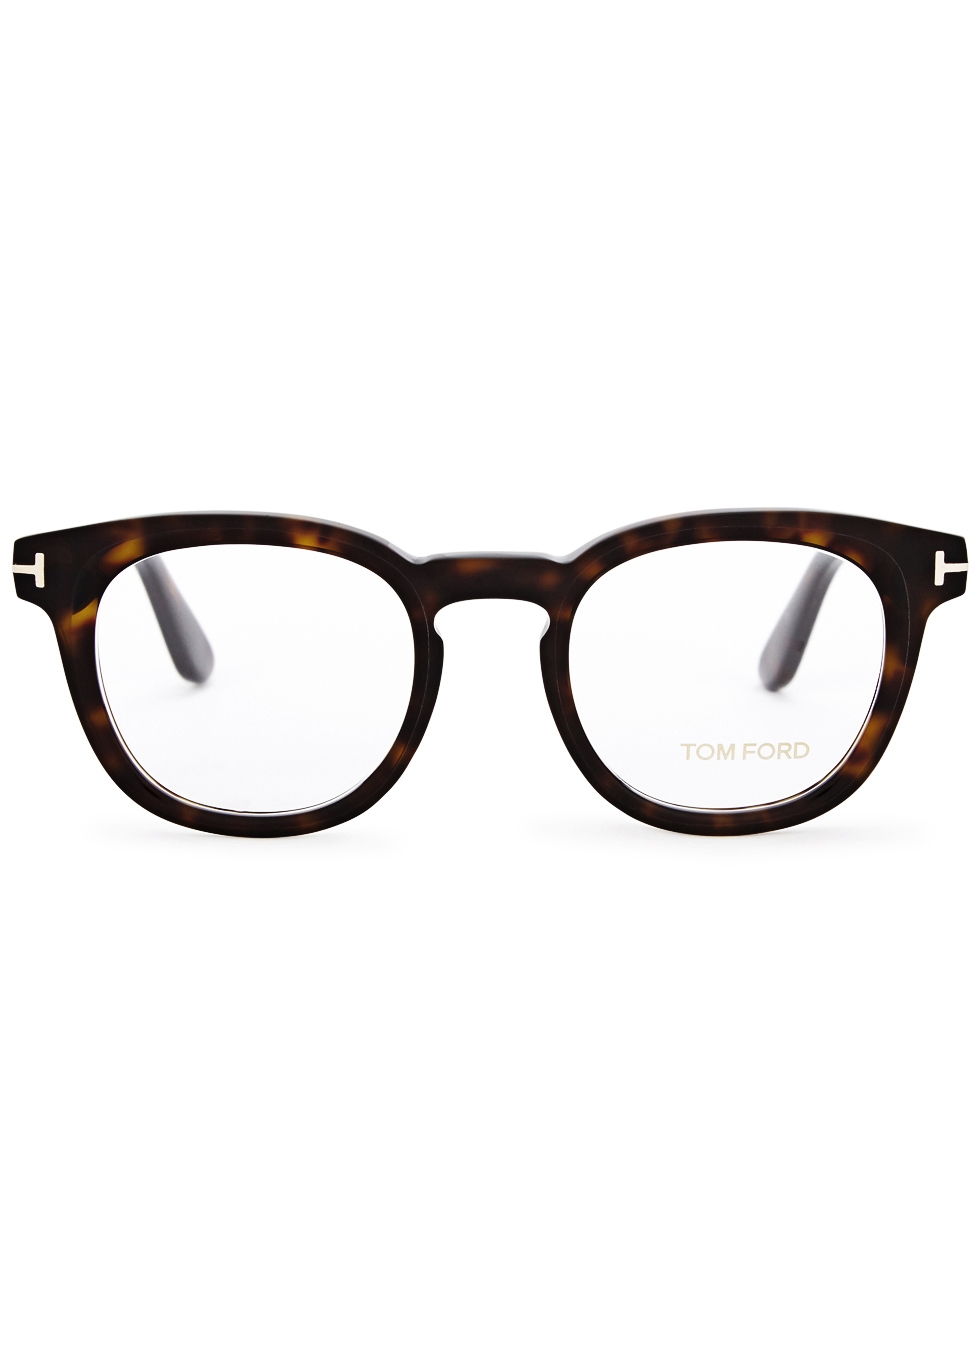 Tortoiseshell optical glasses - Tom Ford Eyewear